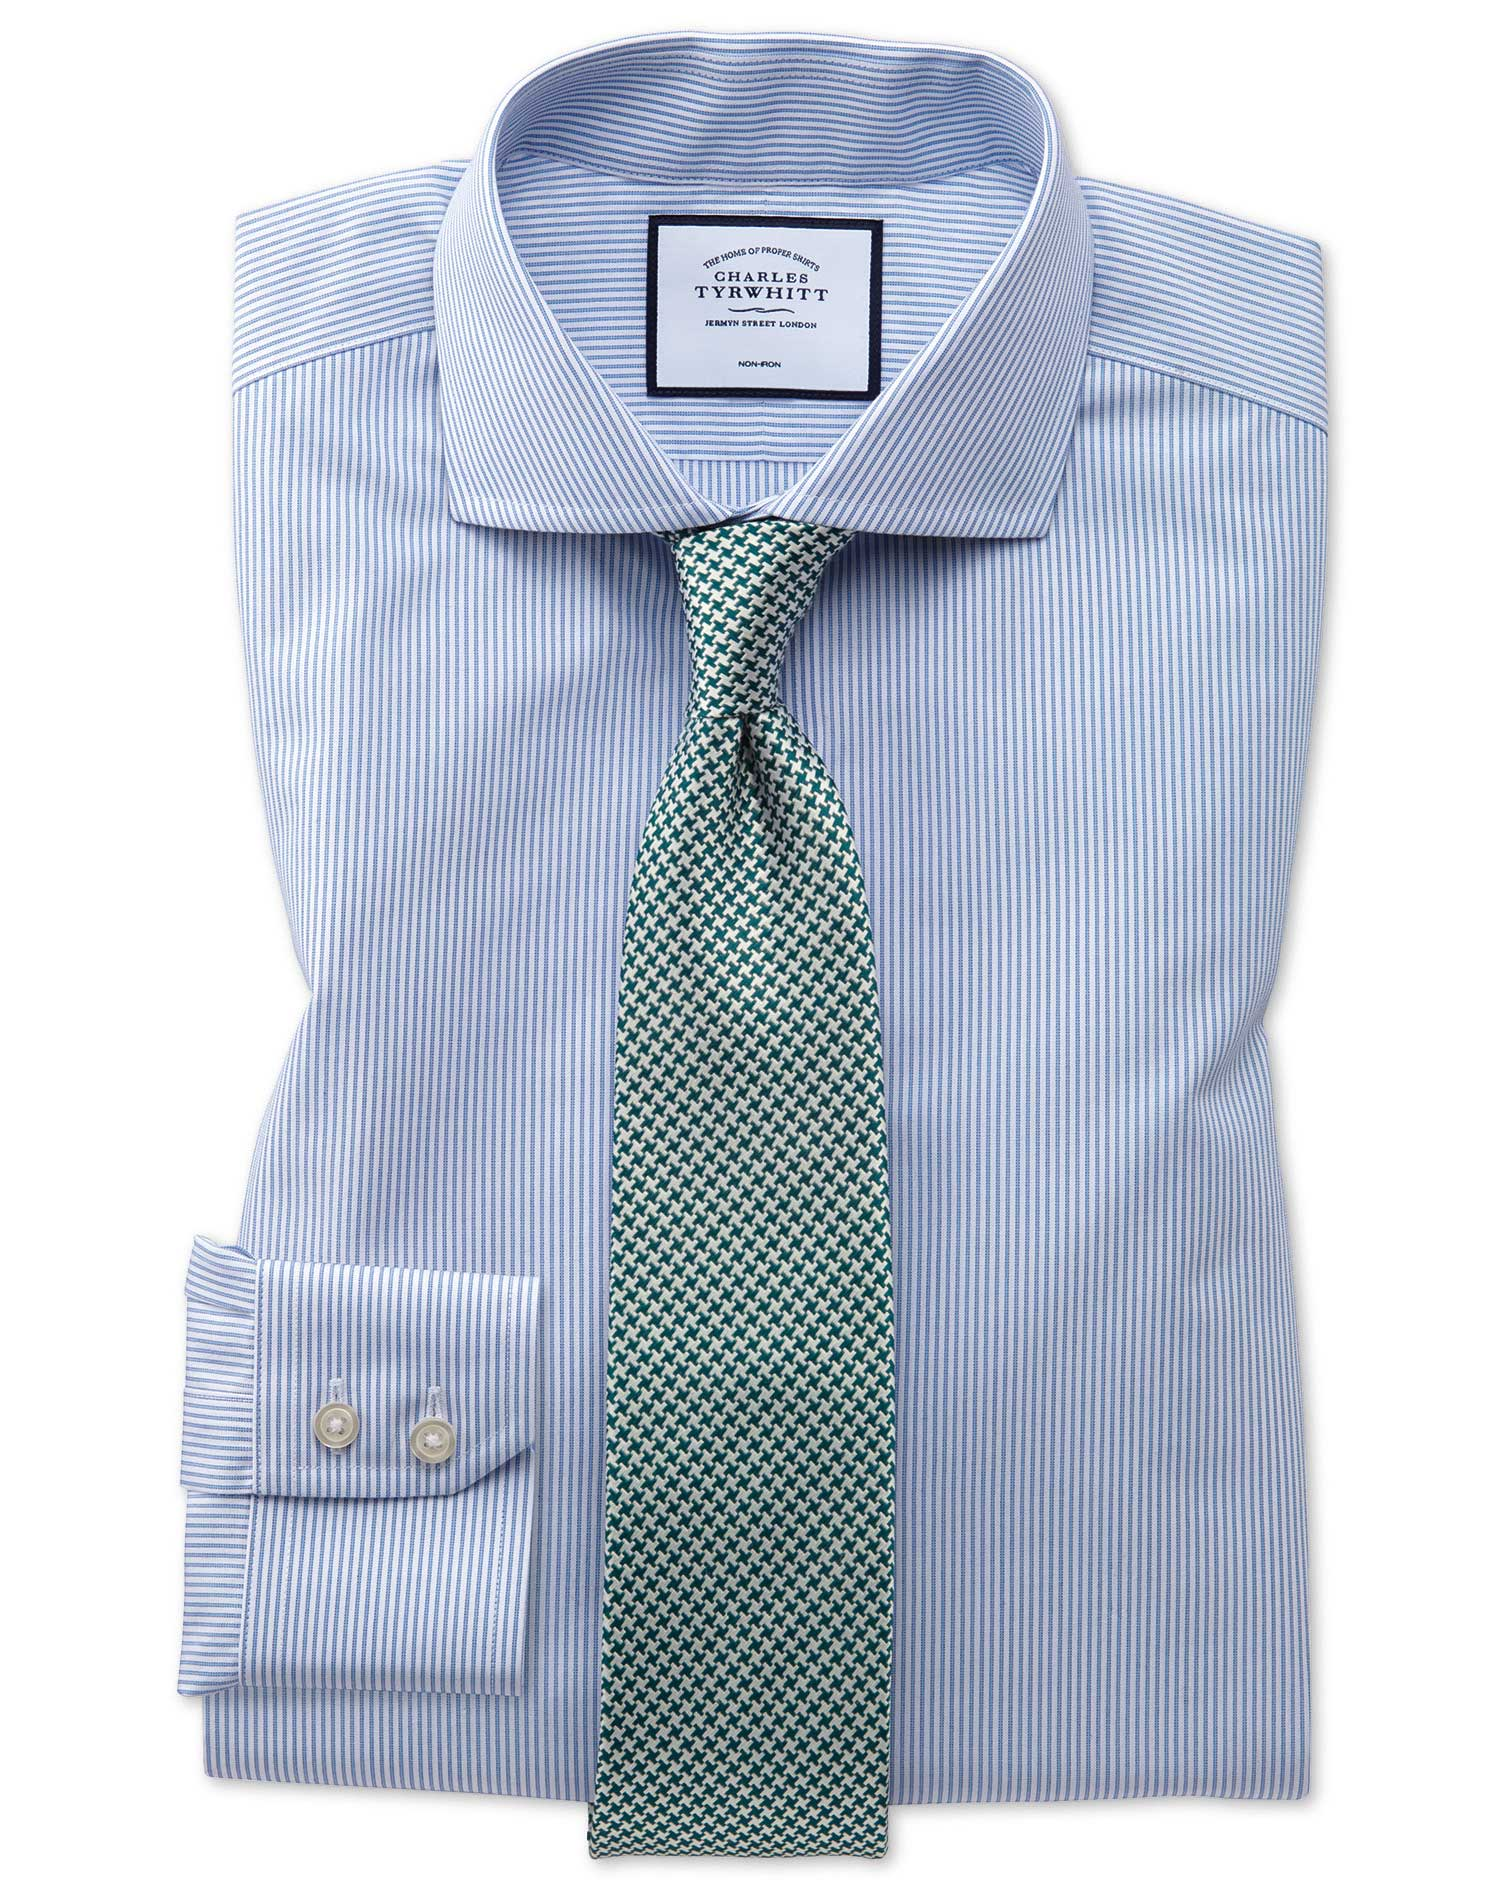 Slim Fit Non-Iron Natural Cool Blue Stripe Cotton Formal Shirt Single Cuff Size 17/34 by Charles Tyr